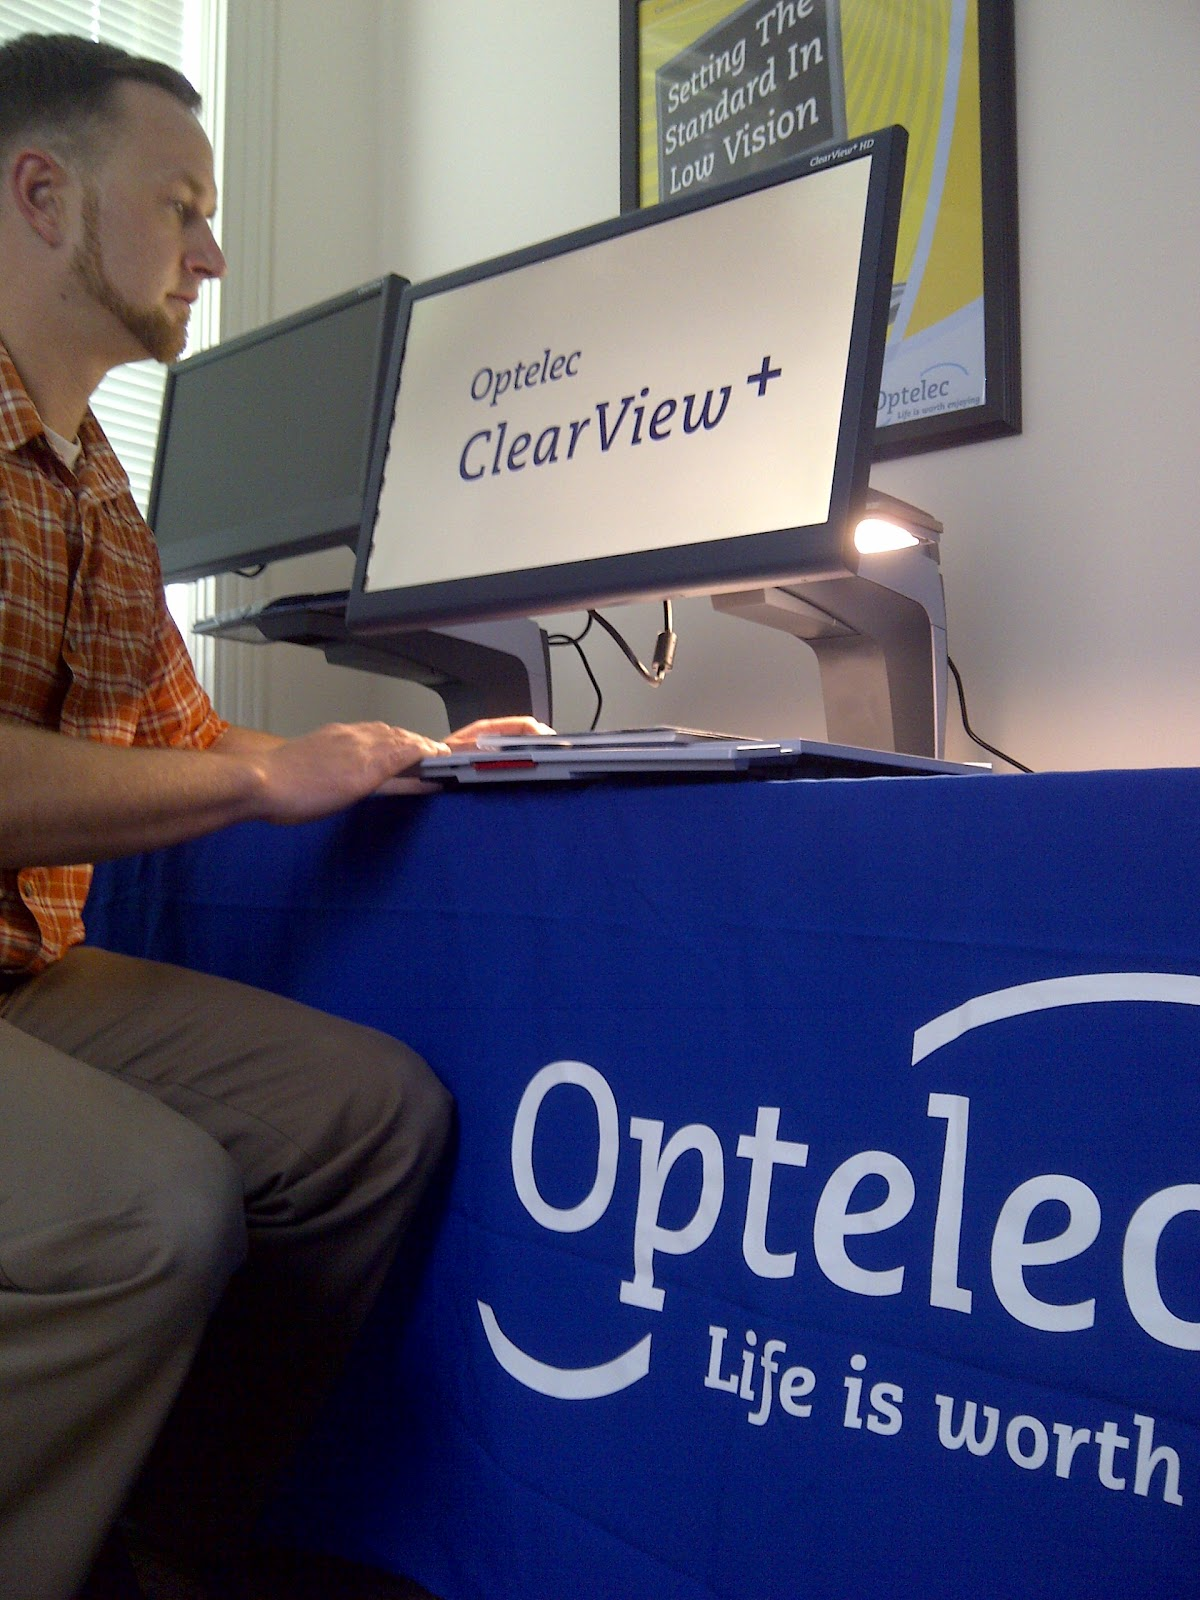 Man using the Optelec product.